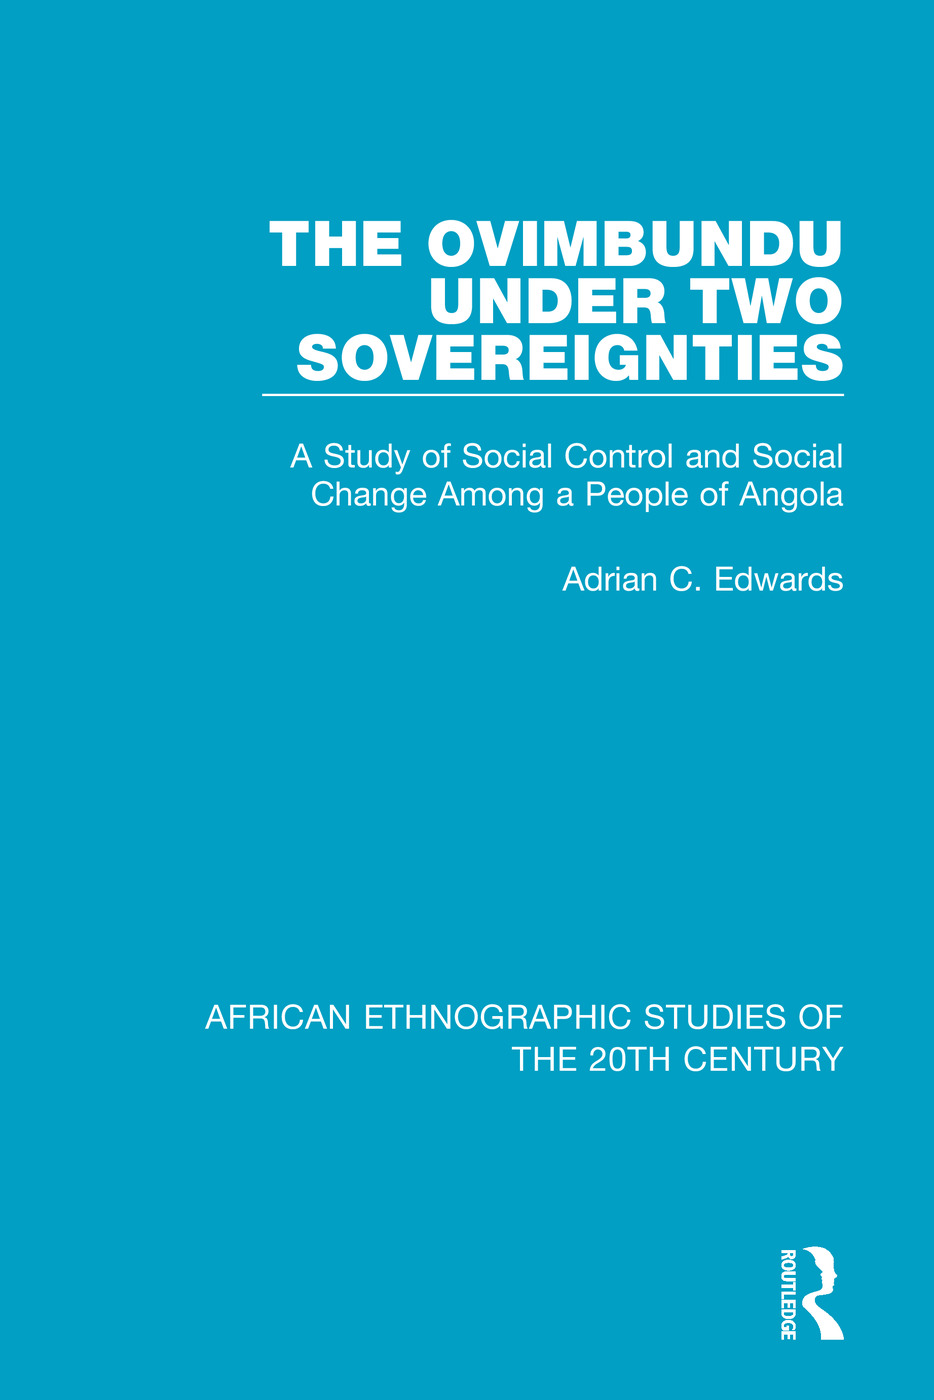 The Ovimbundu Under Two Sovereignties: A Study of Social Control and Social Change Among a People of Angola book cover